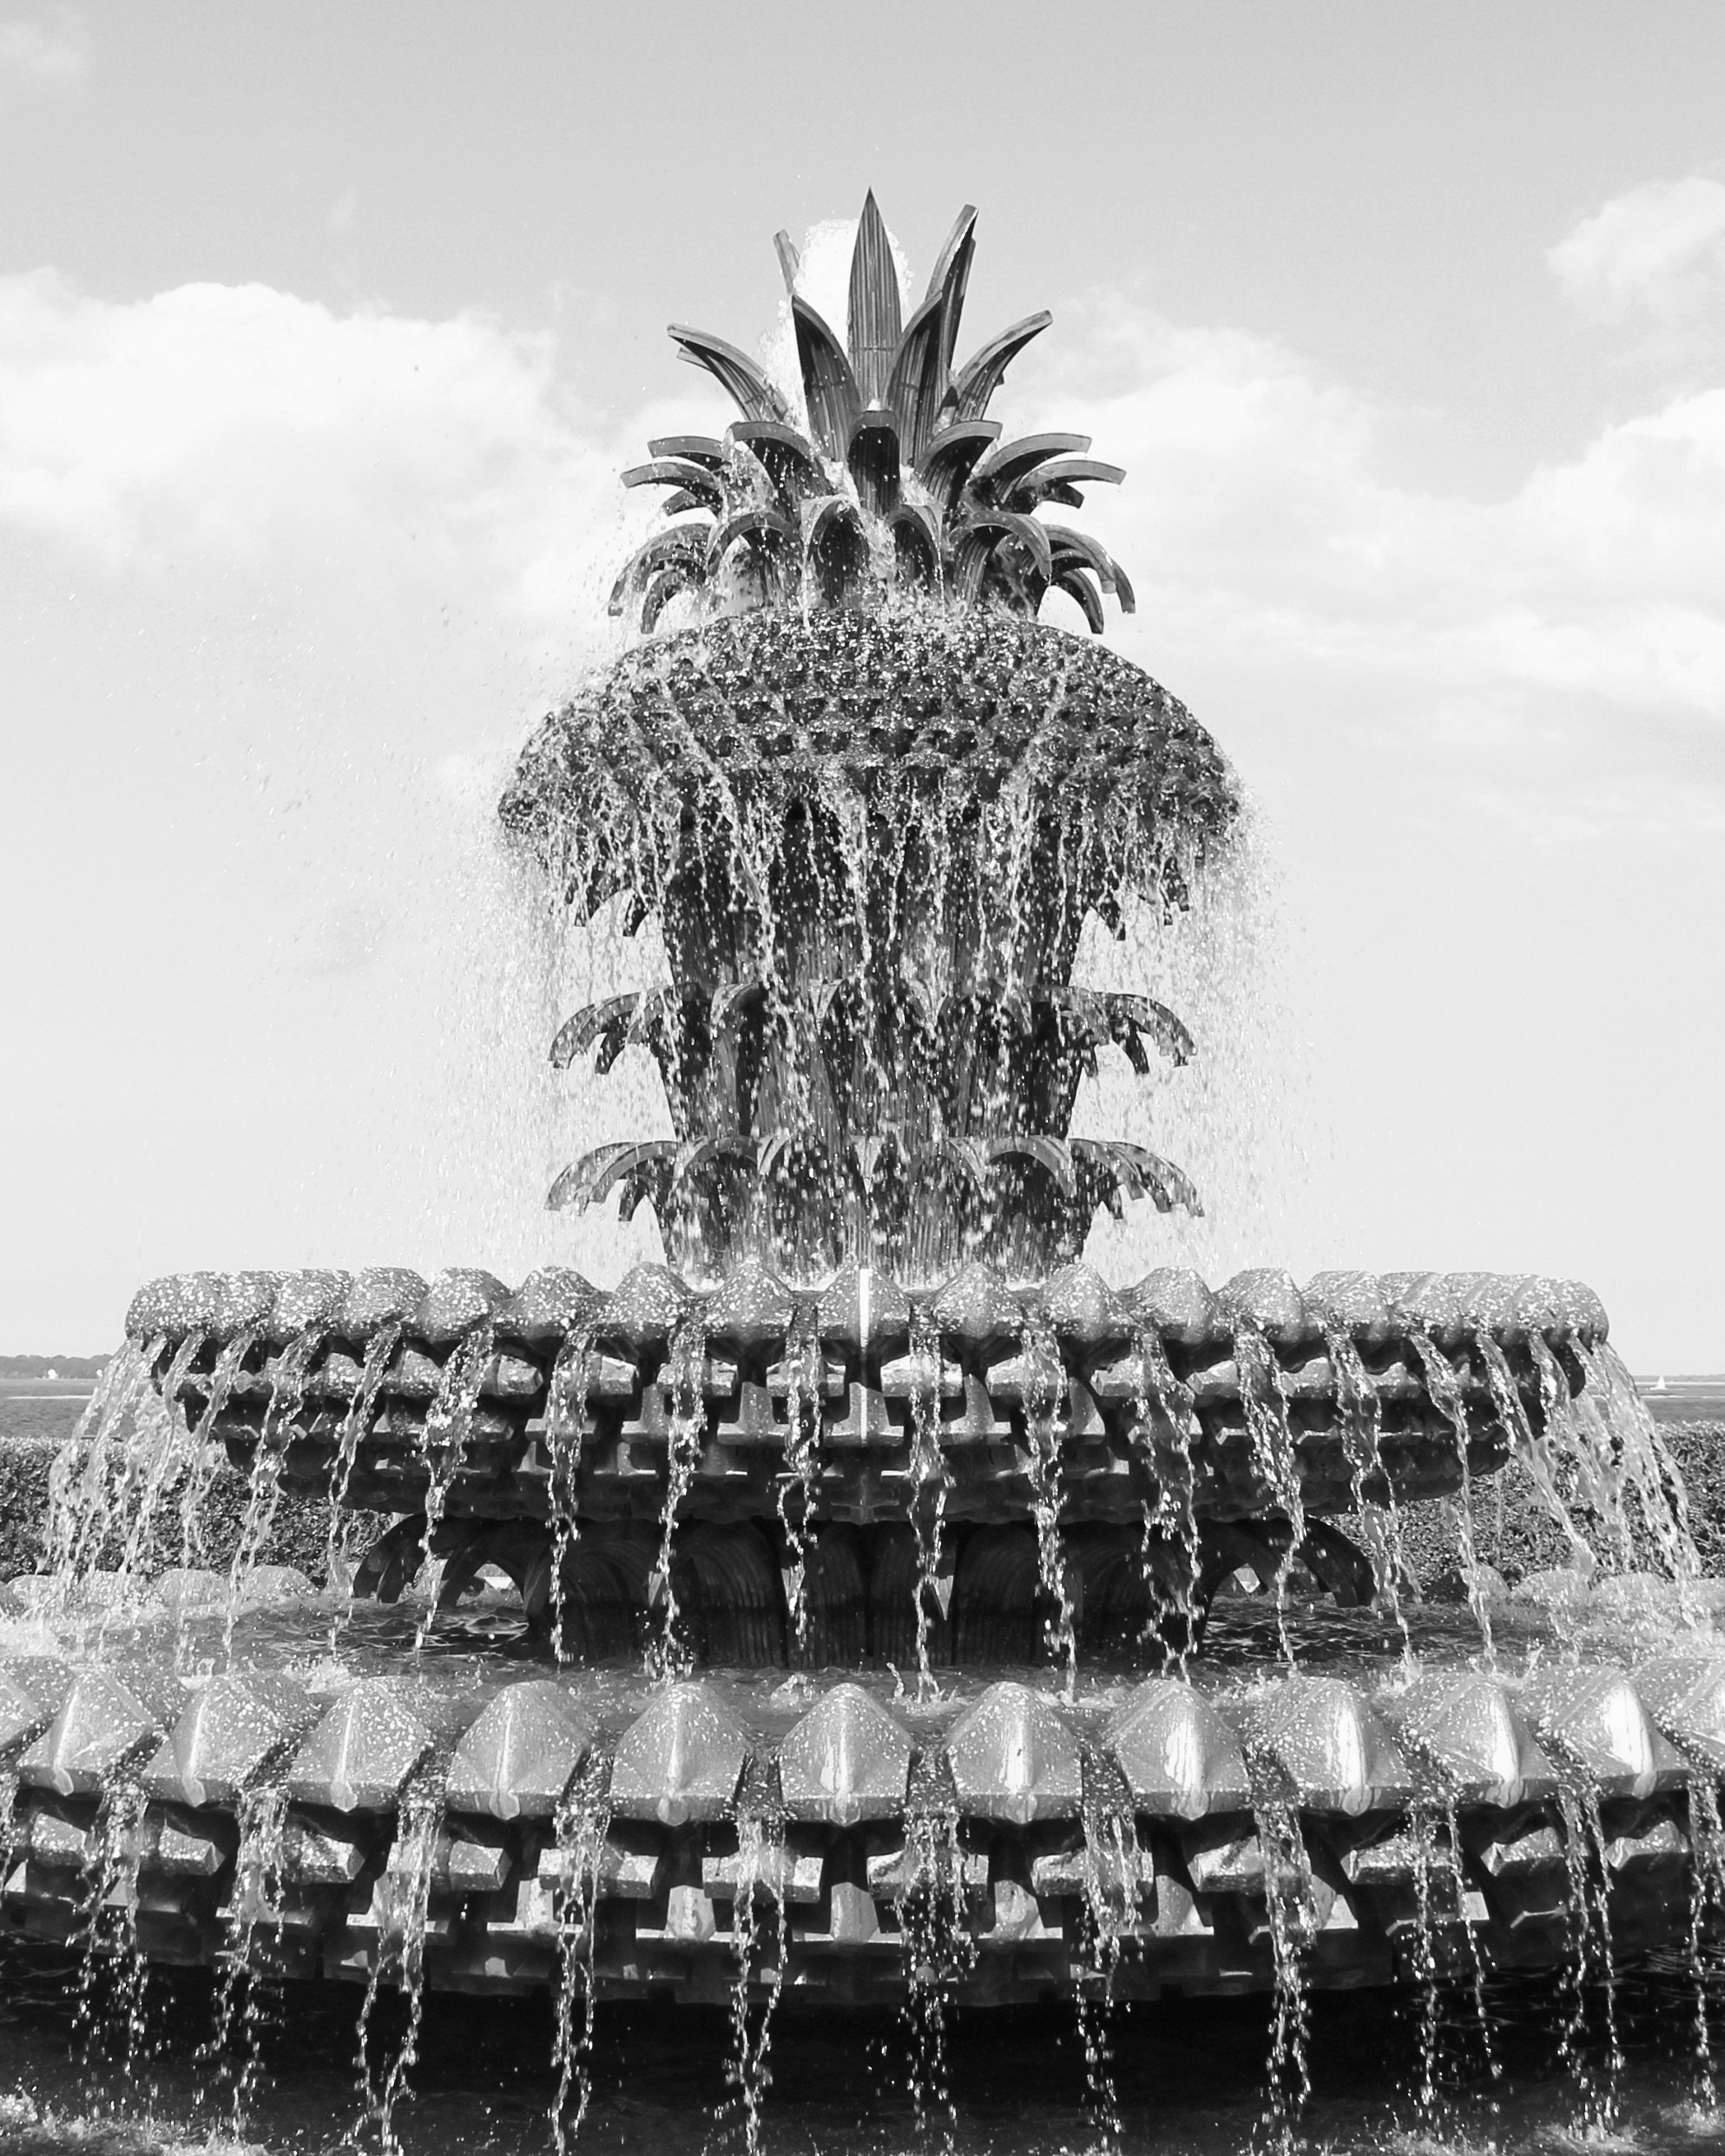 Fountains Falling